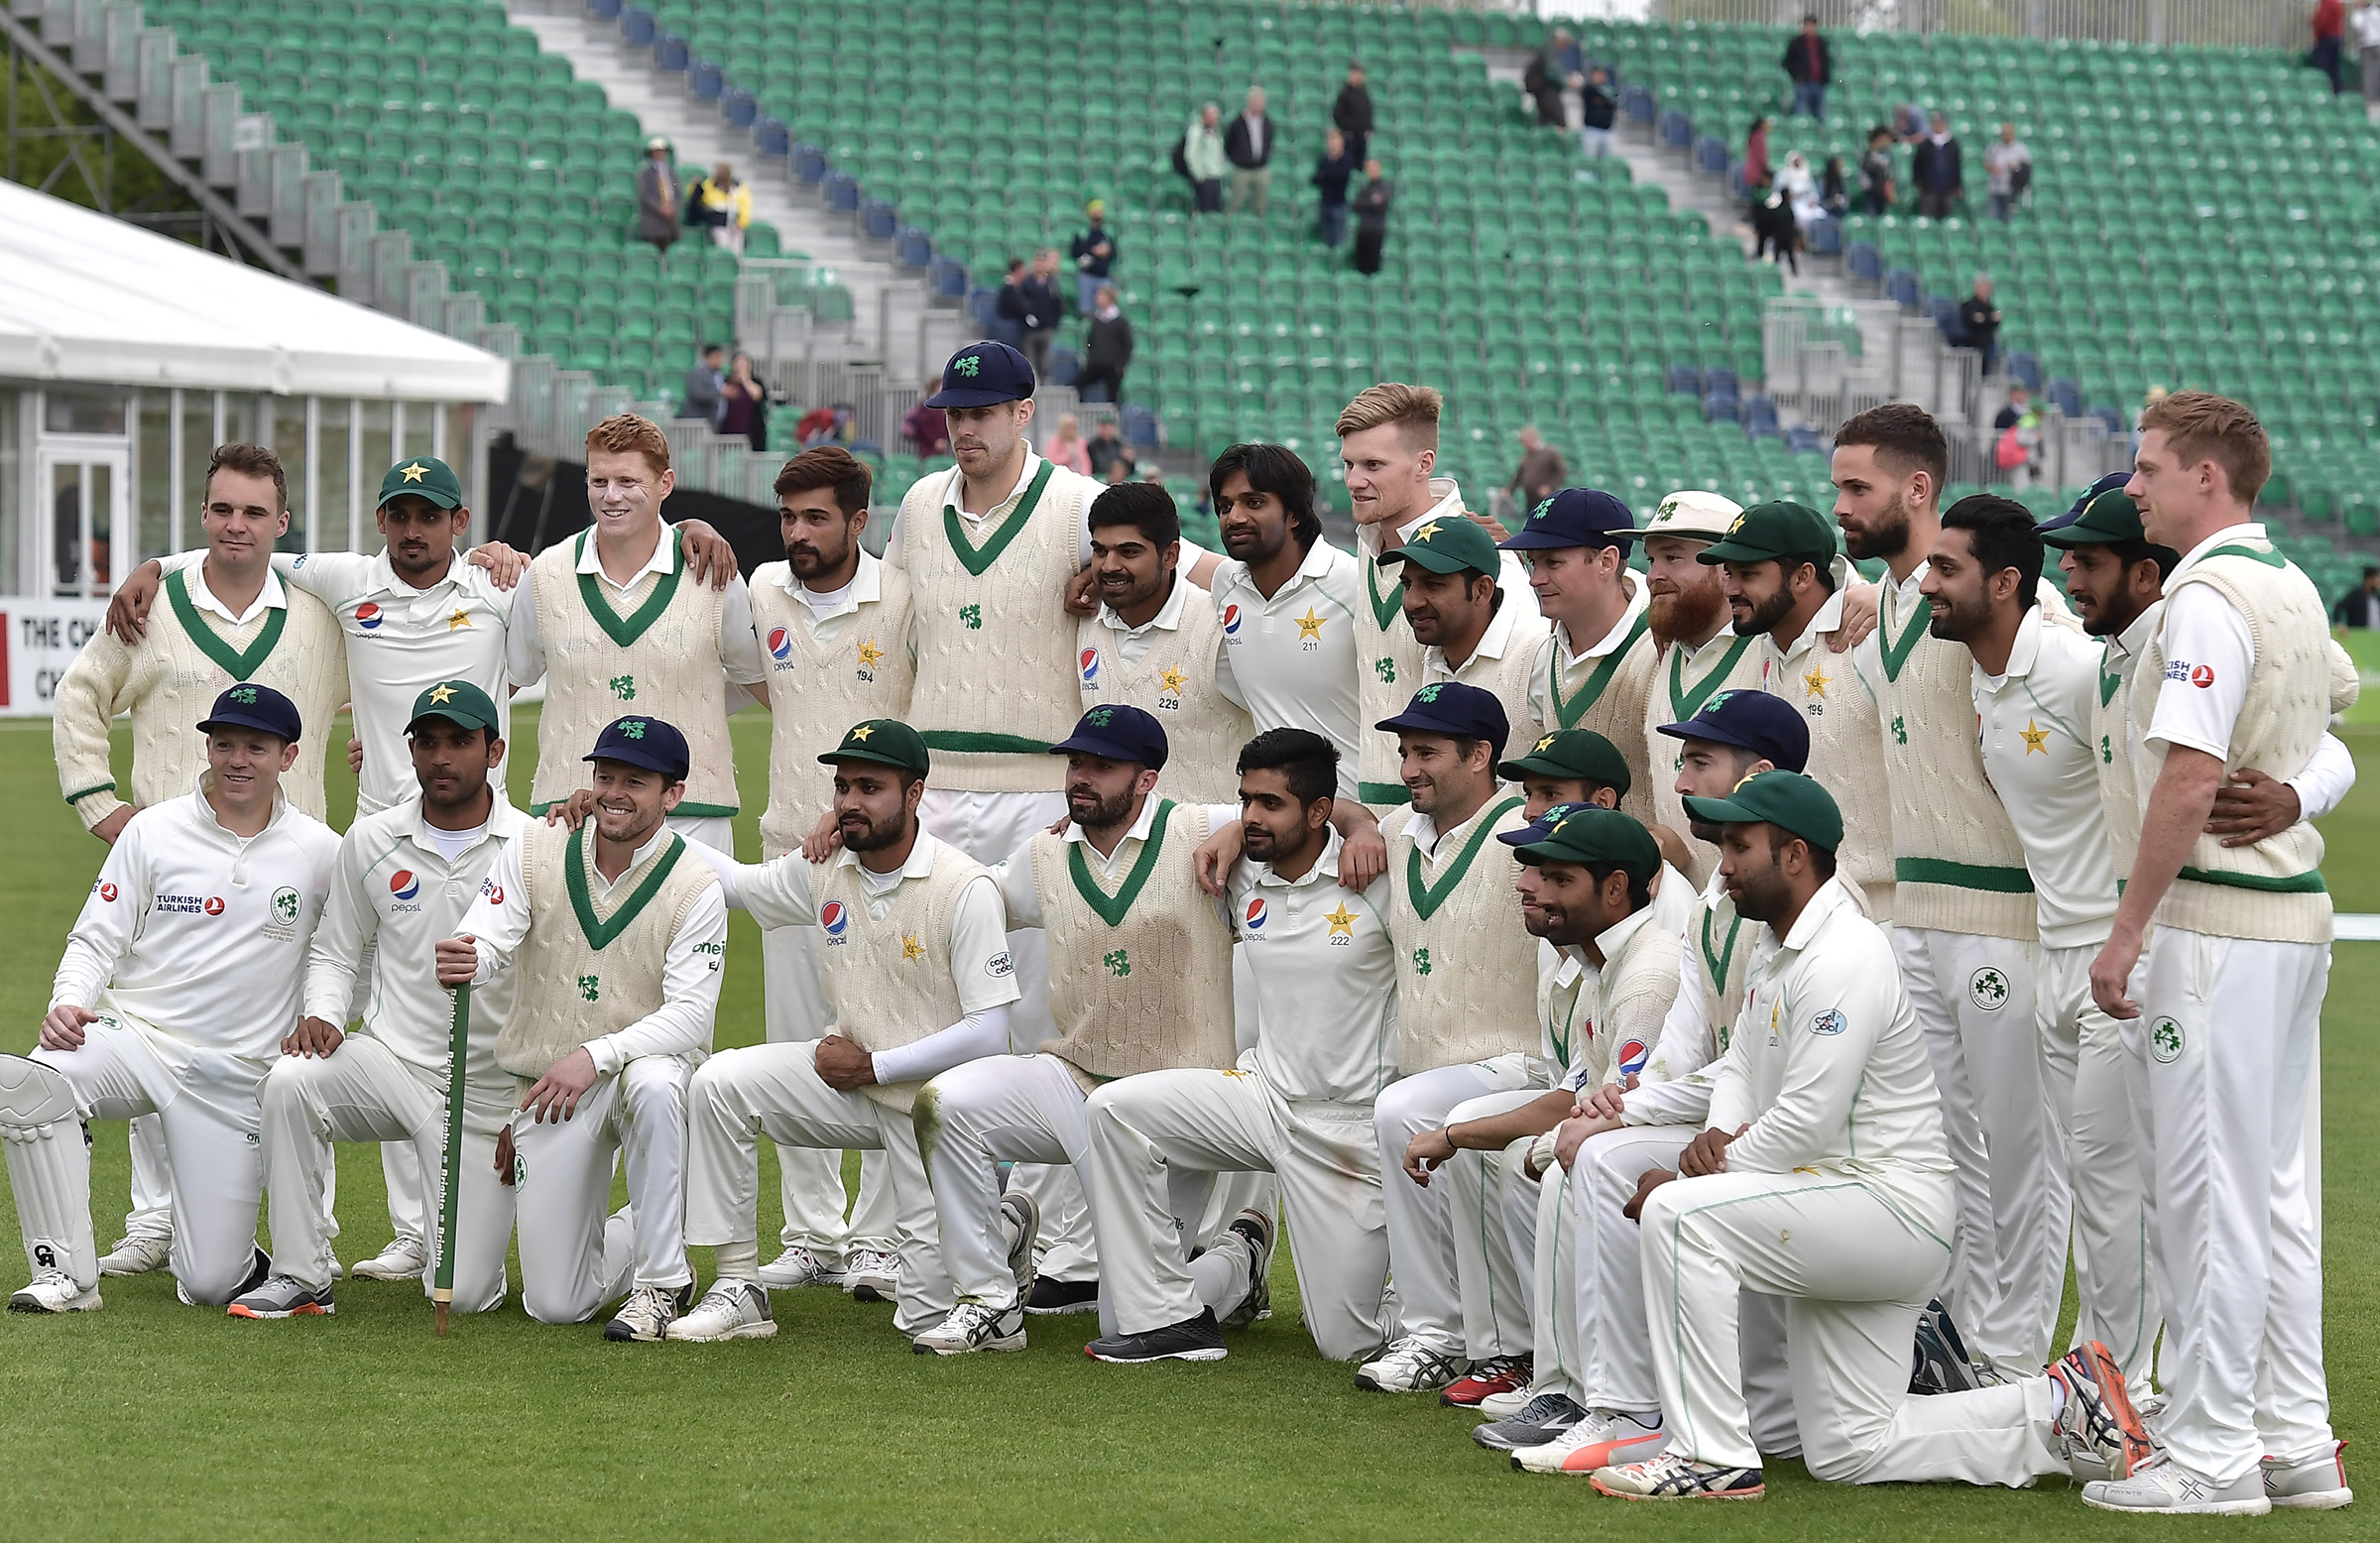 The two teams pose for photos together post-match // Getty